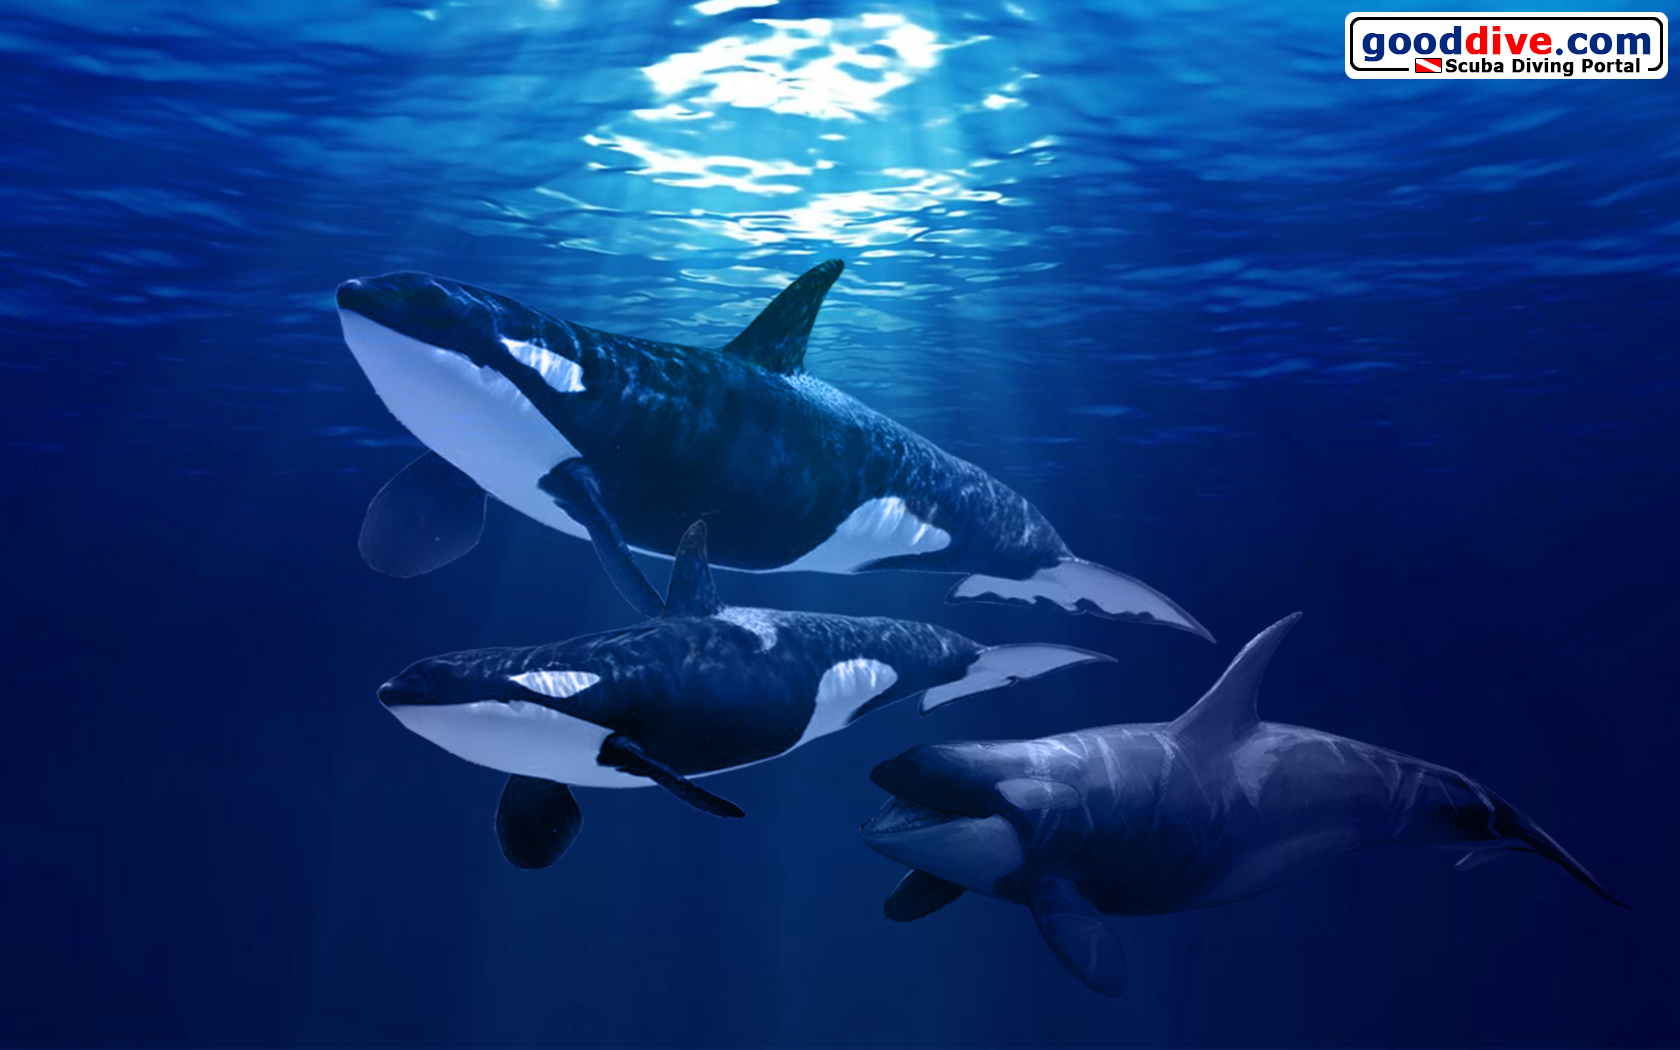 wallpaper orca16801050 gooddivecom